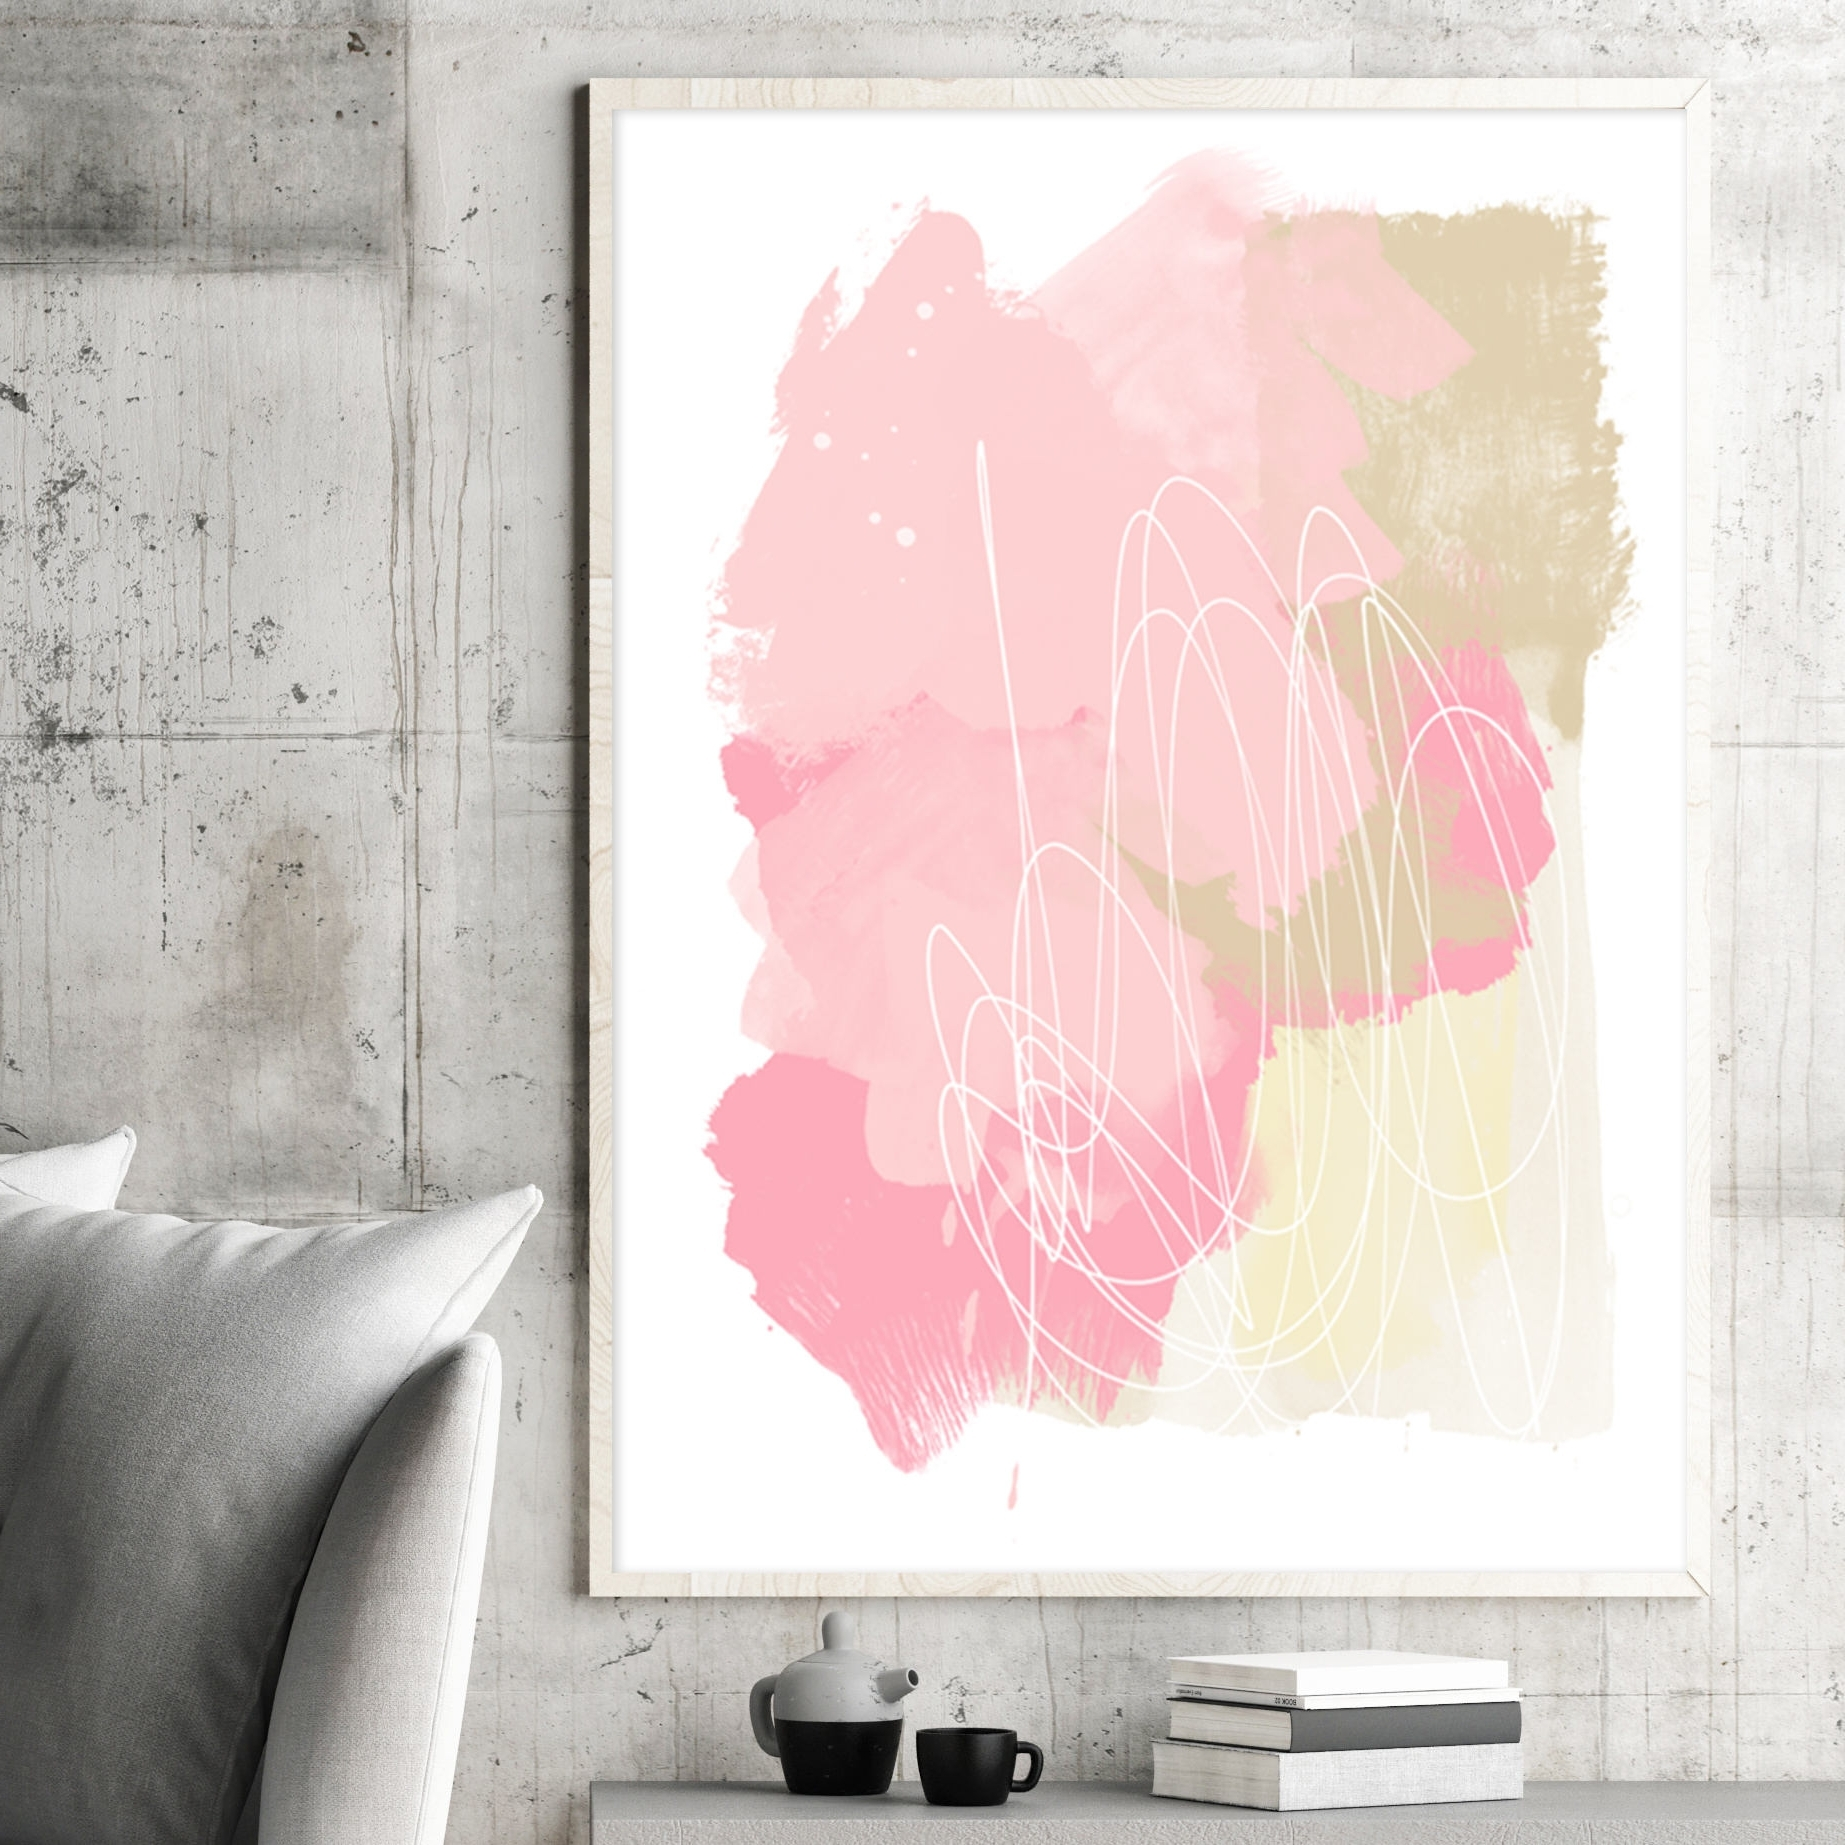 Well Known Pale Pink Abstract Art, Pink And Beige Painting, Printable Modern Throughout Pink Abstract Wall Art (View 15 of 15)